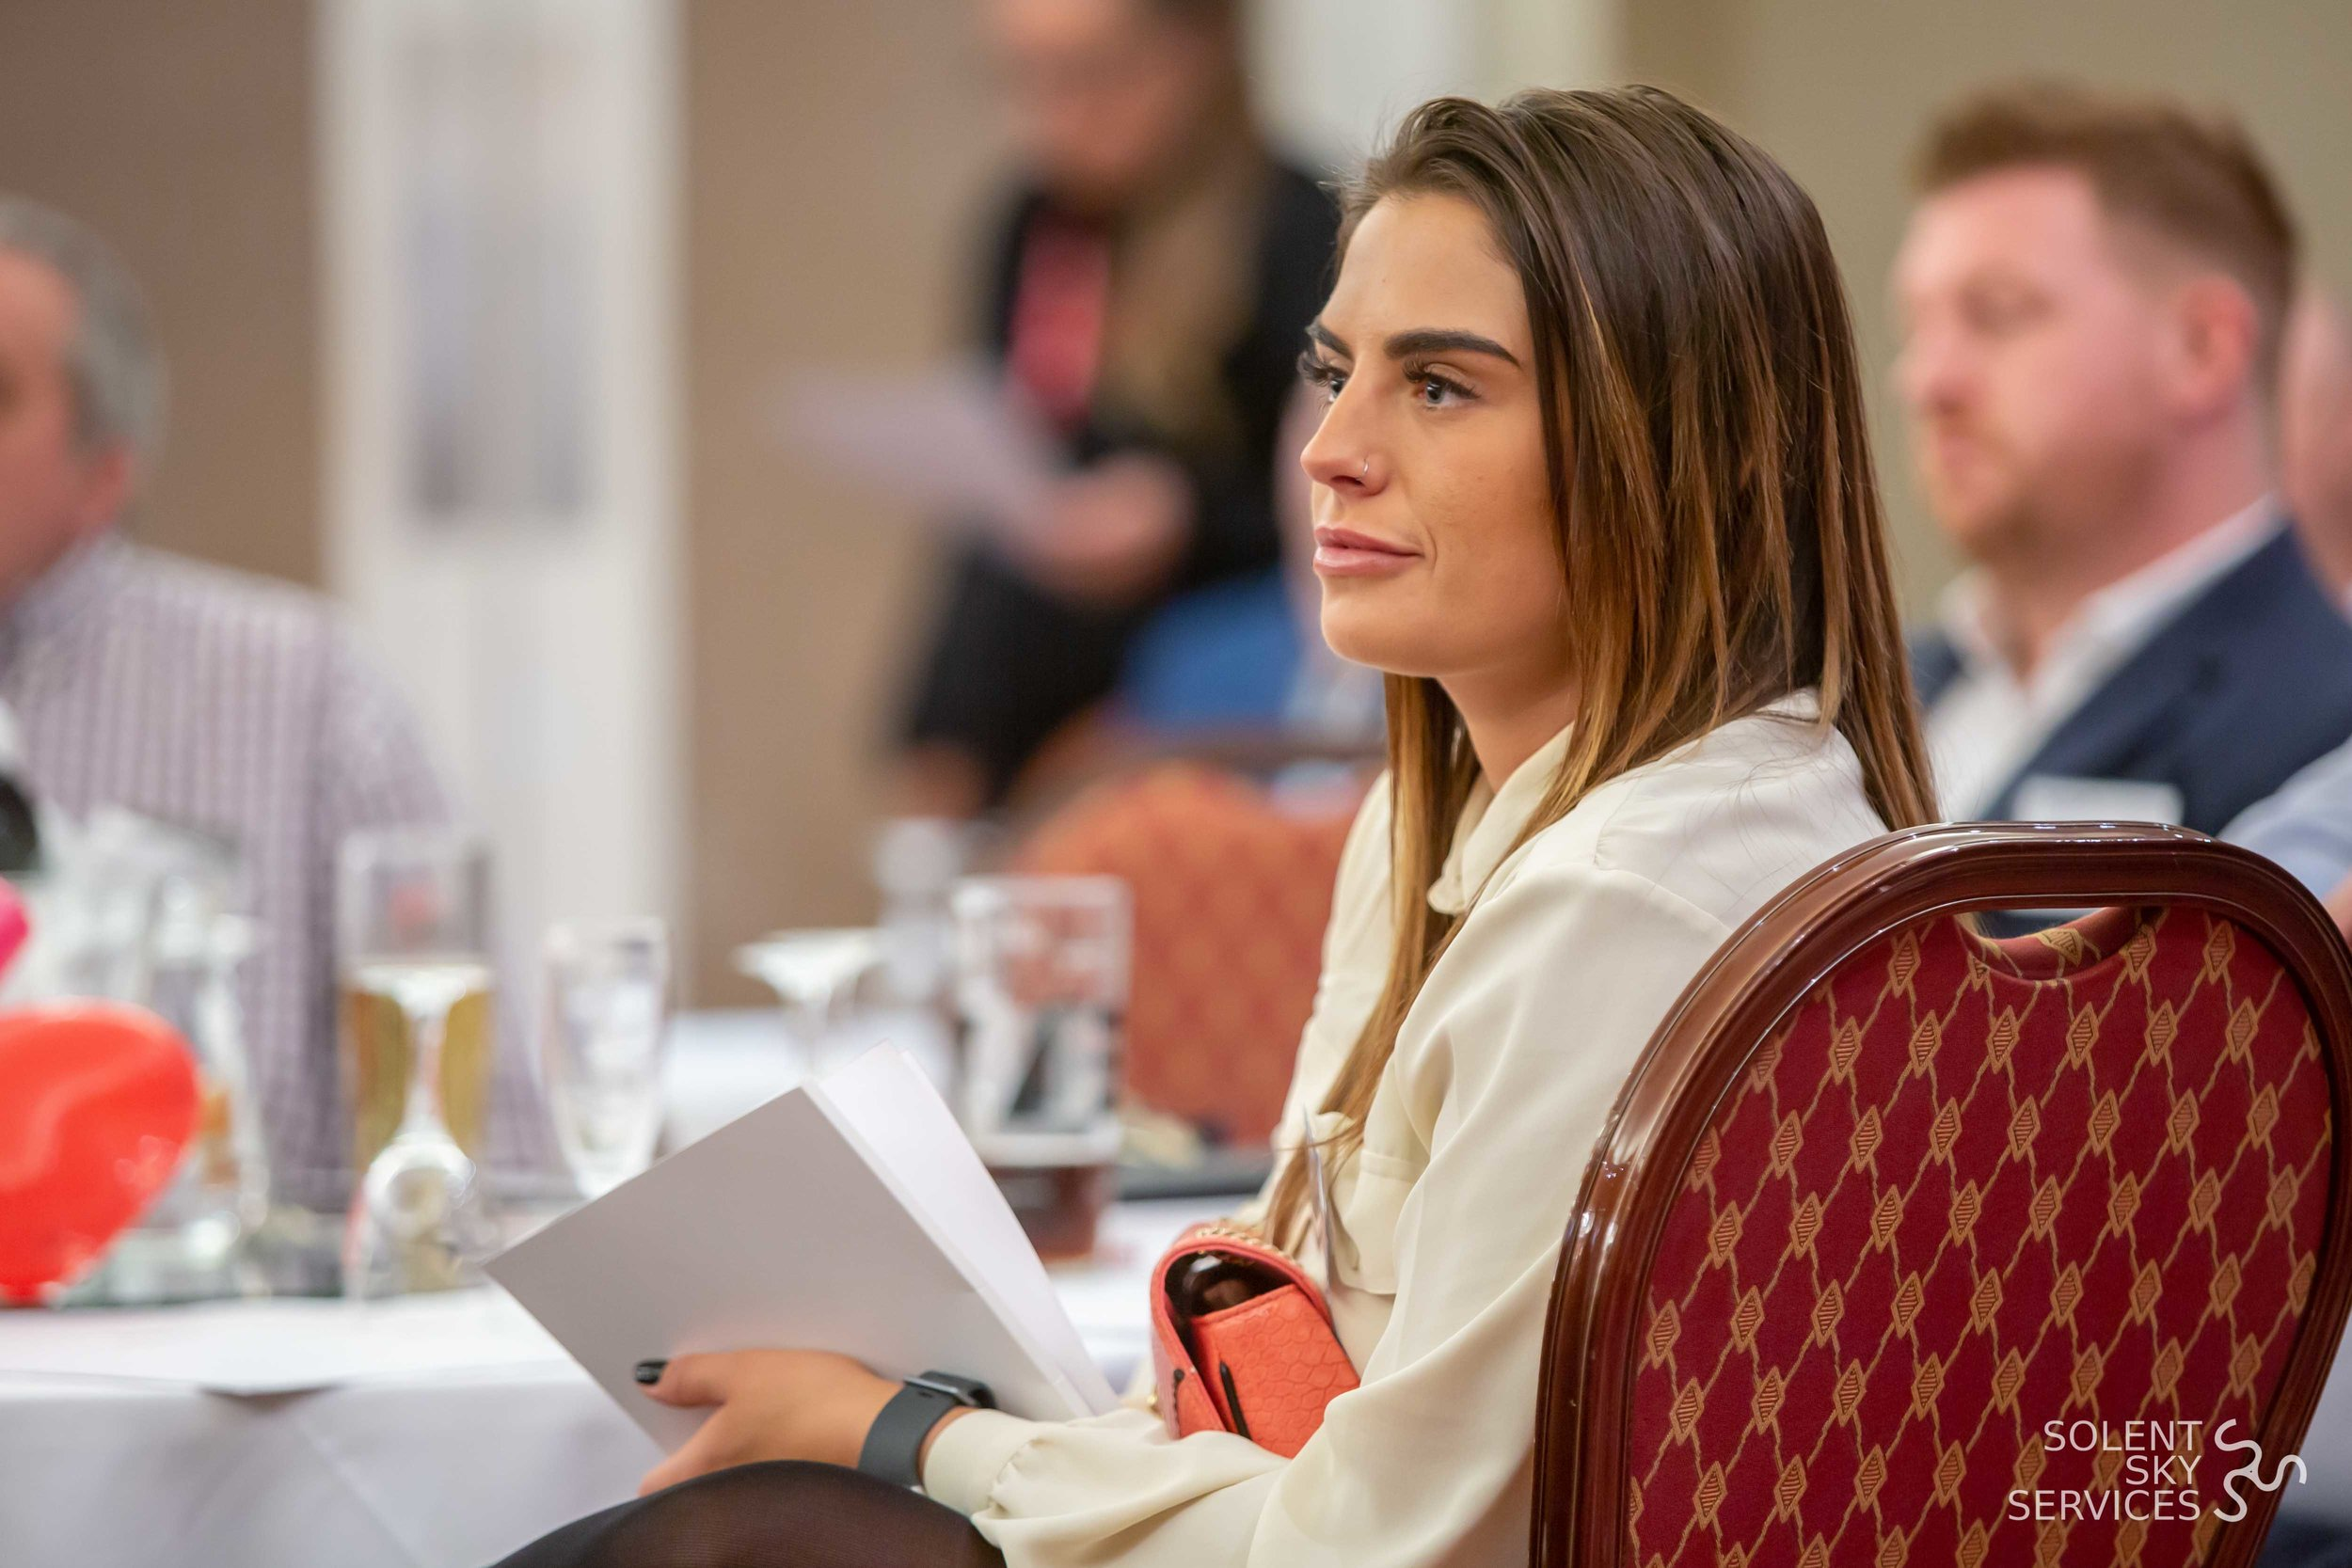 Synergy Success Networking Event #2 - Solent Sky Services-84.JPG